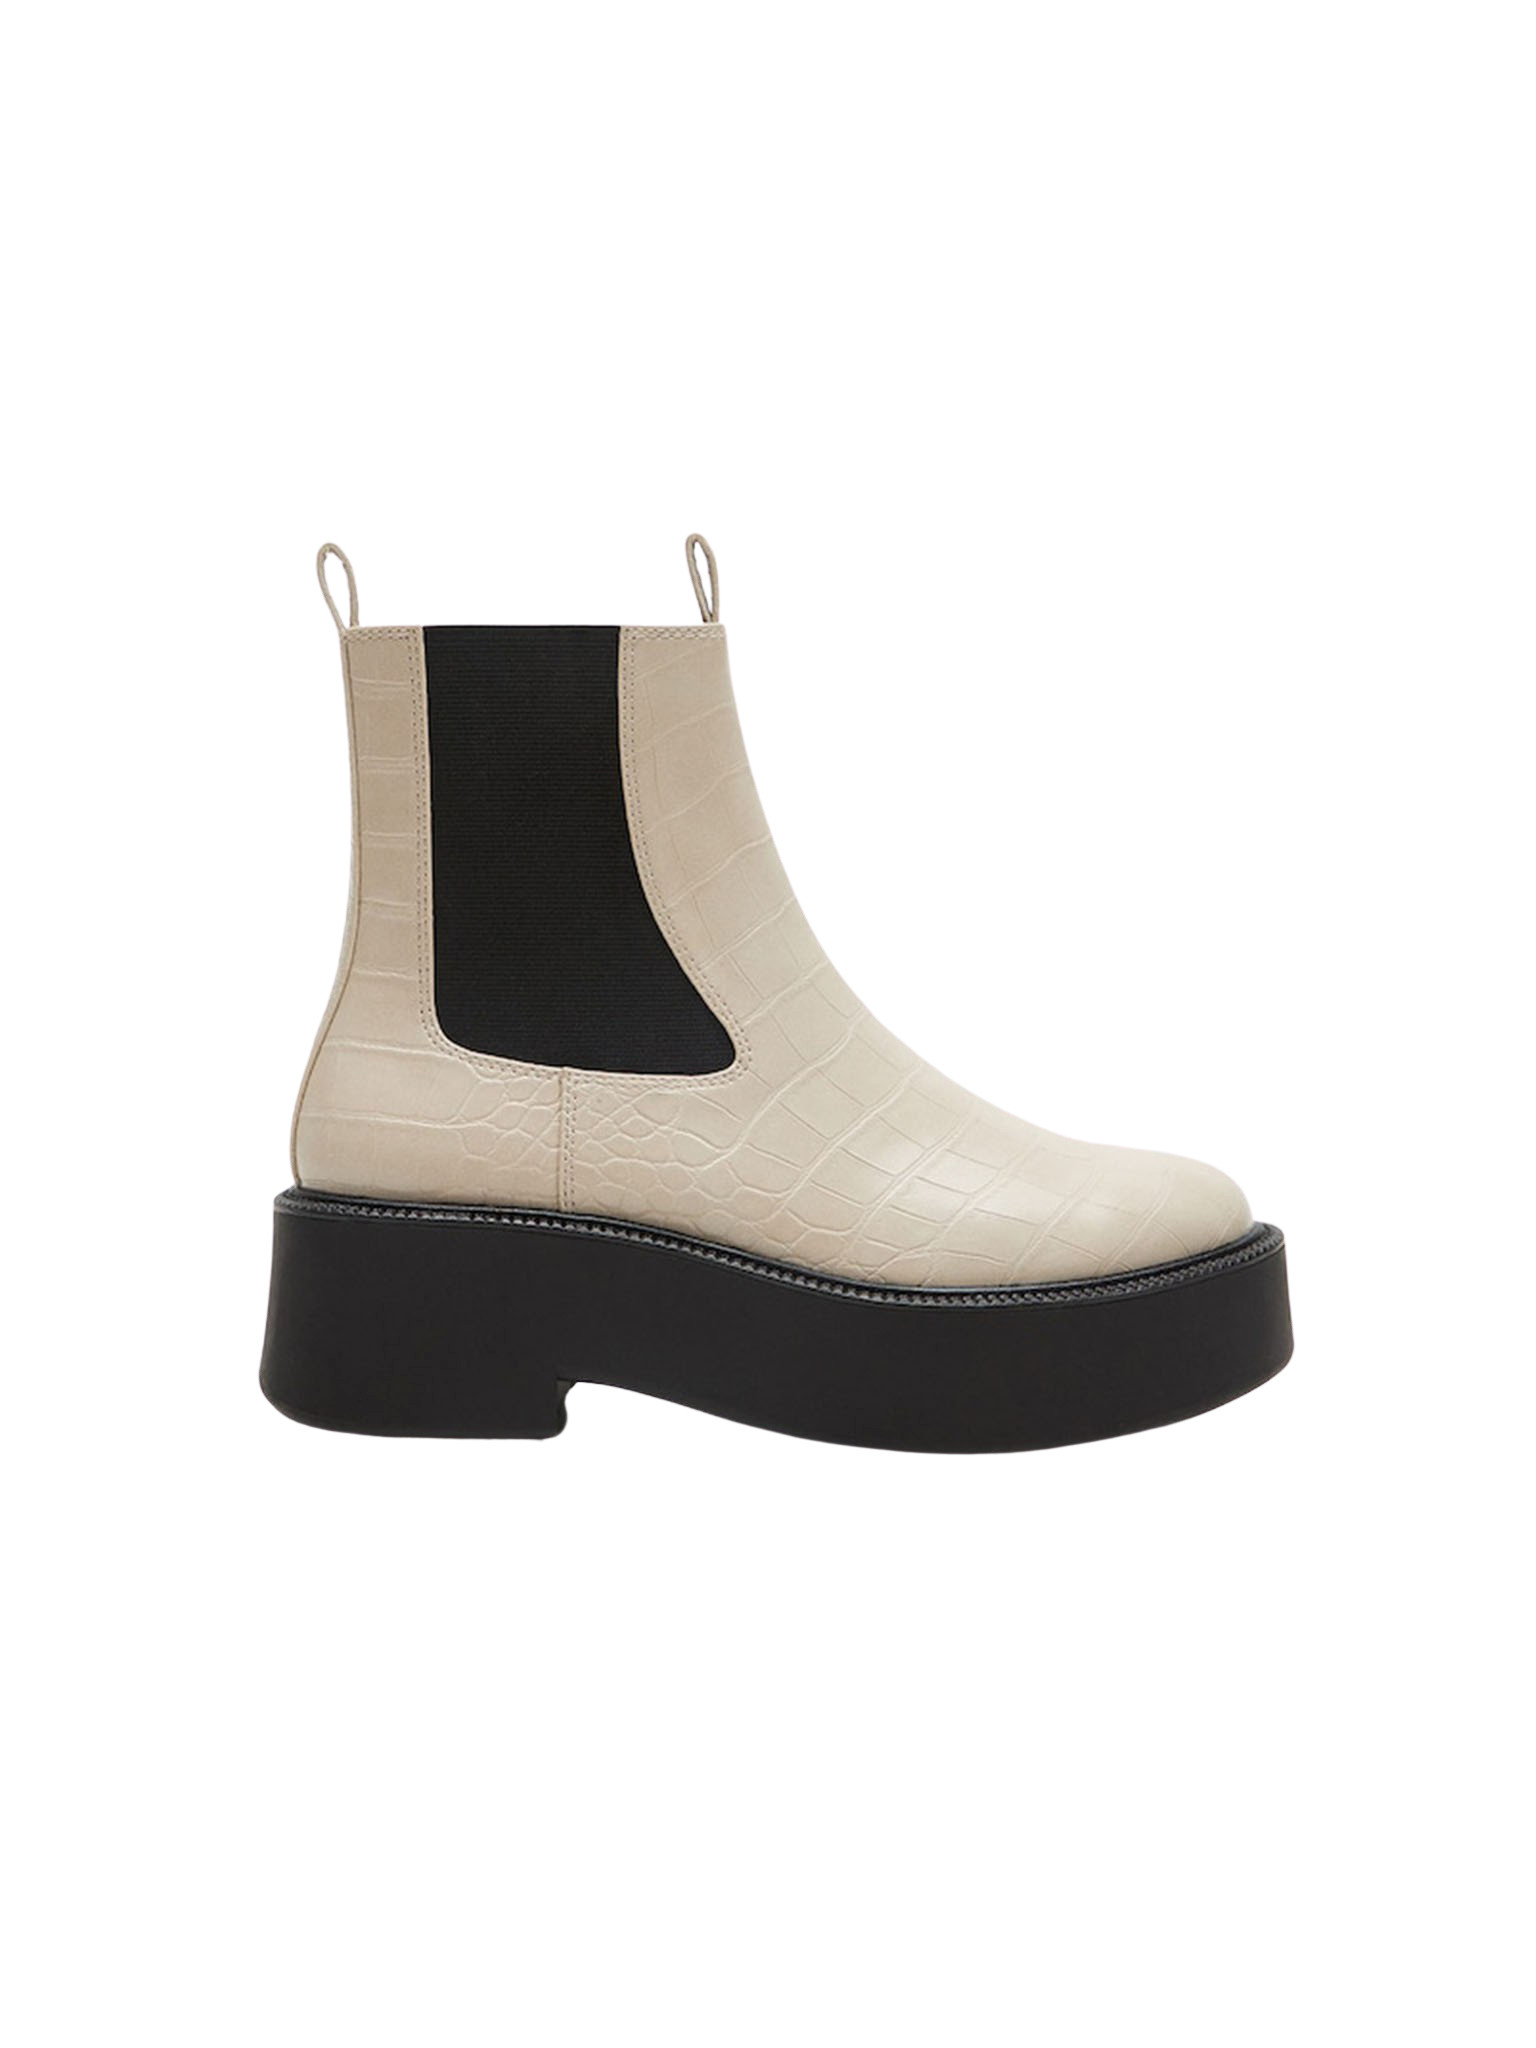 Croc-Effect Ankle Boots